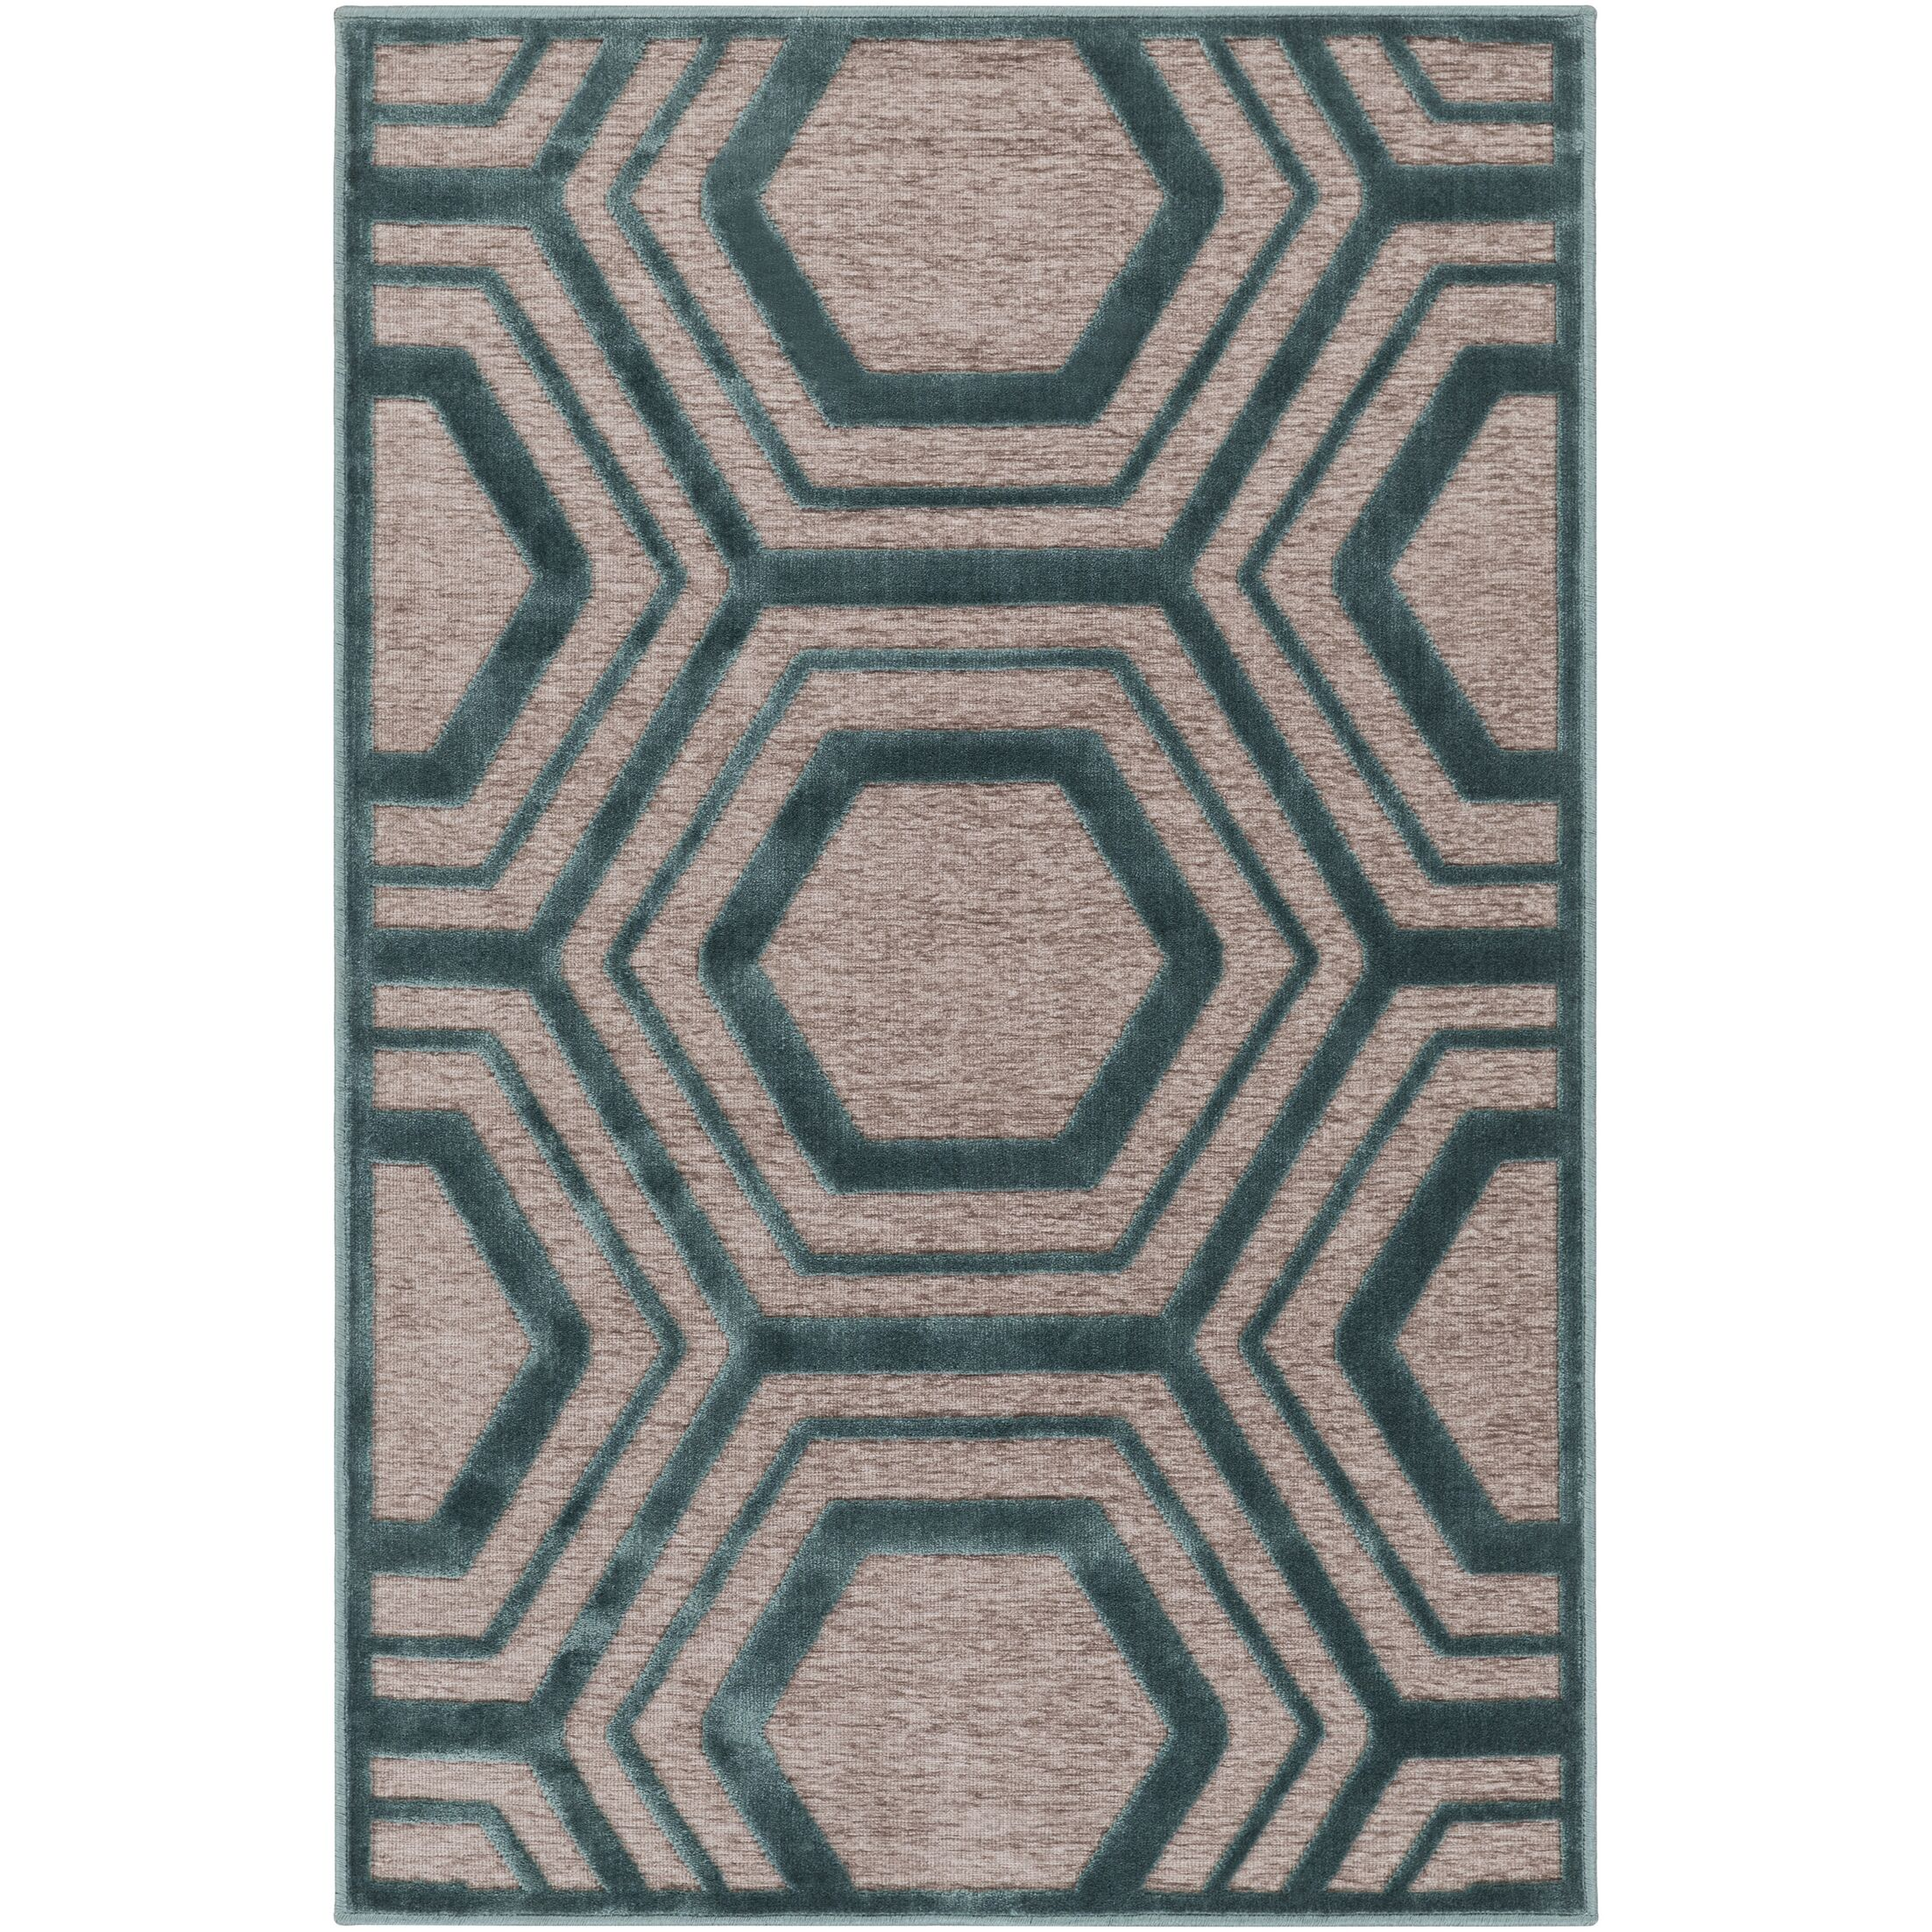 Springdale Green/Brown Area Rug Rug Size: Rectangle 7'10